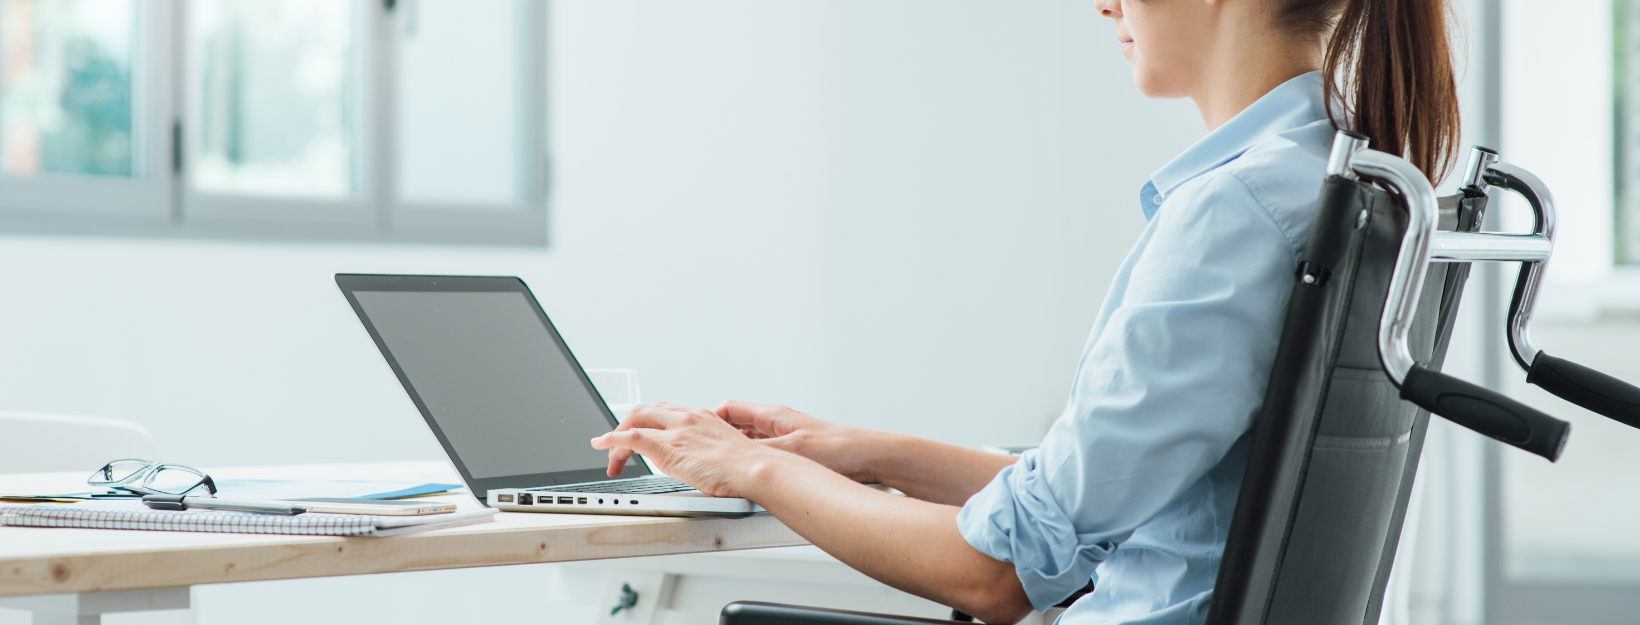 woman in manual char working in front of laptop